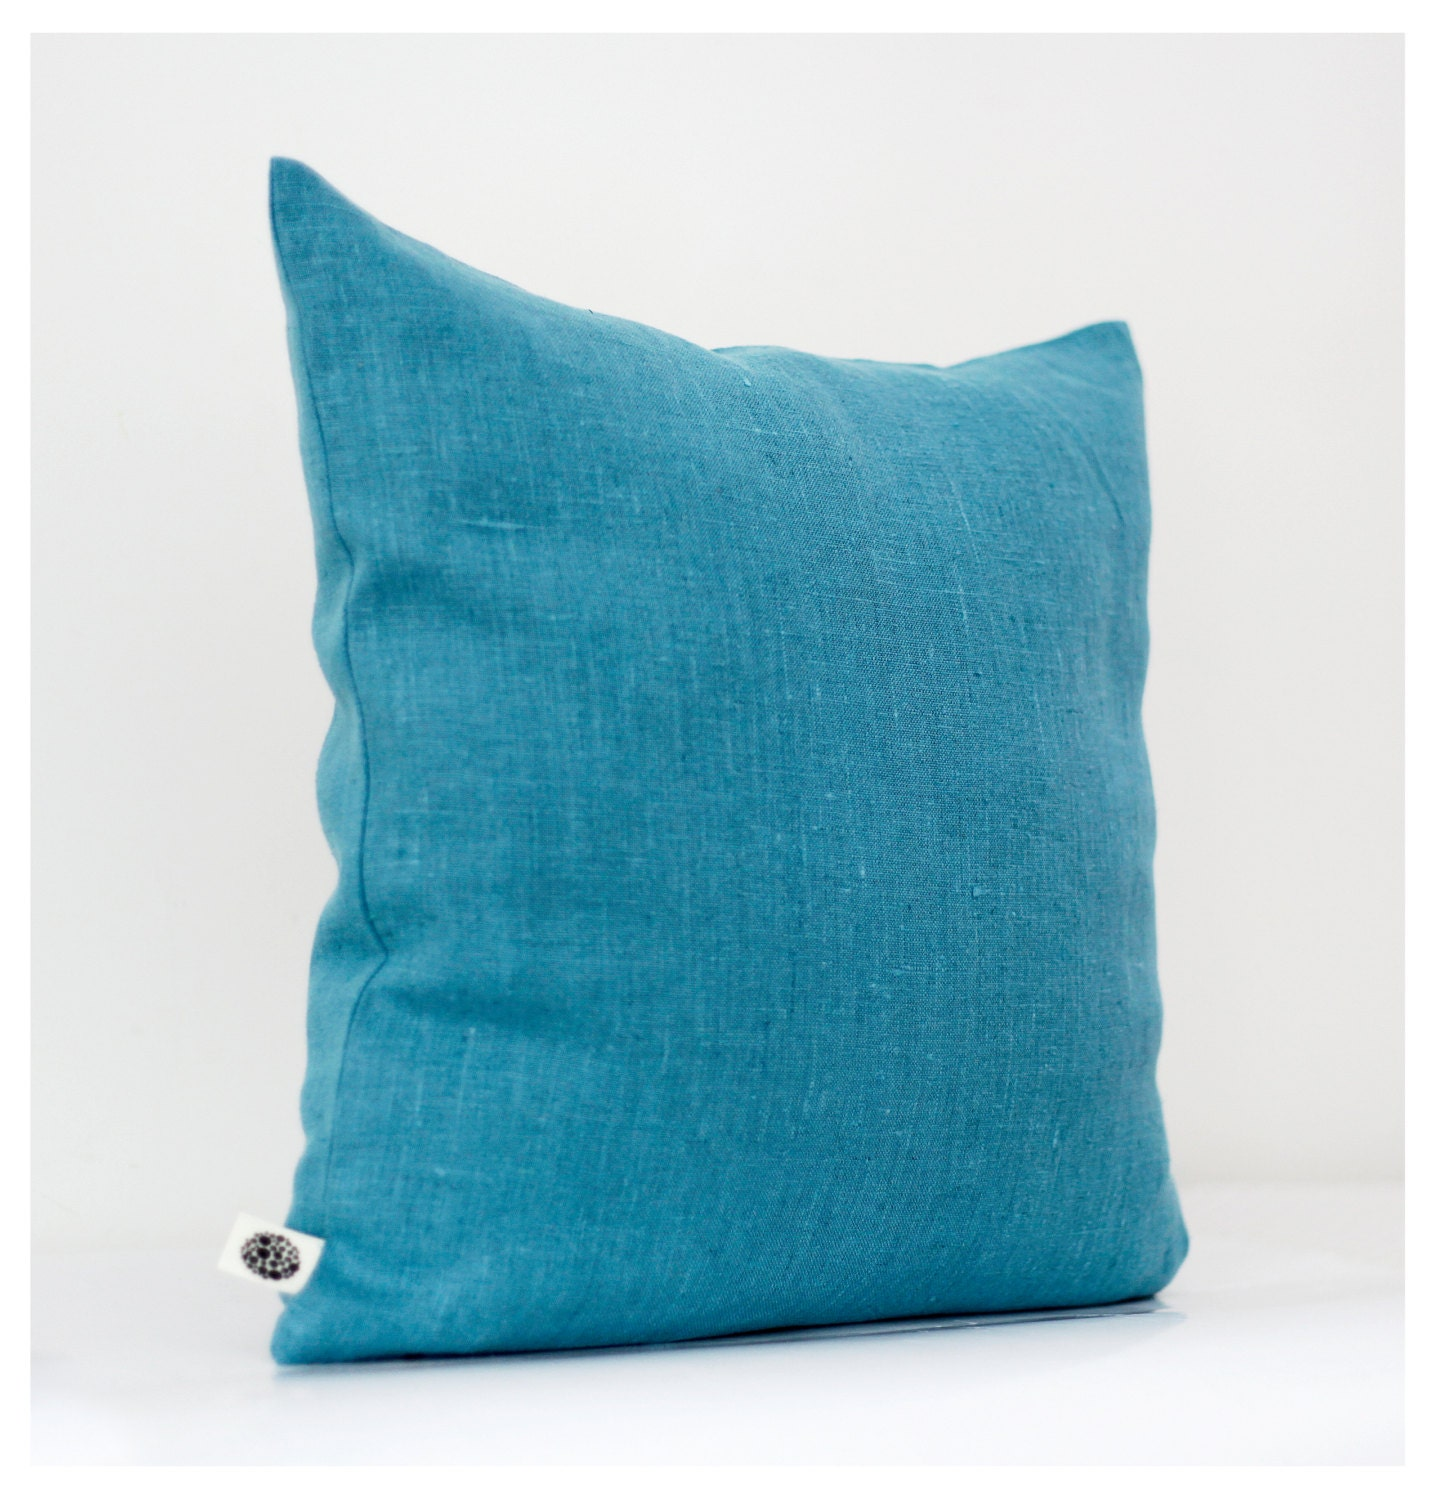 Decorative Pillows In Turquoise : Blue turquoise pillow cover decorative pillows shams